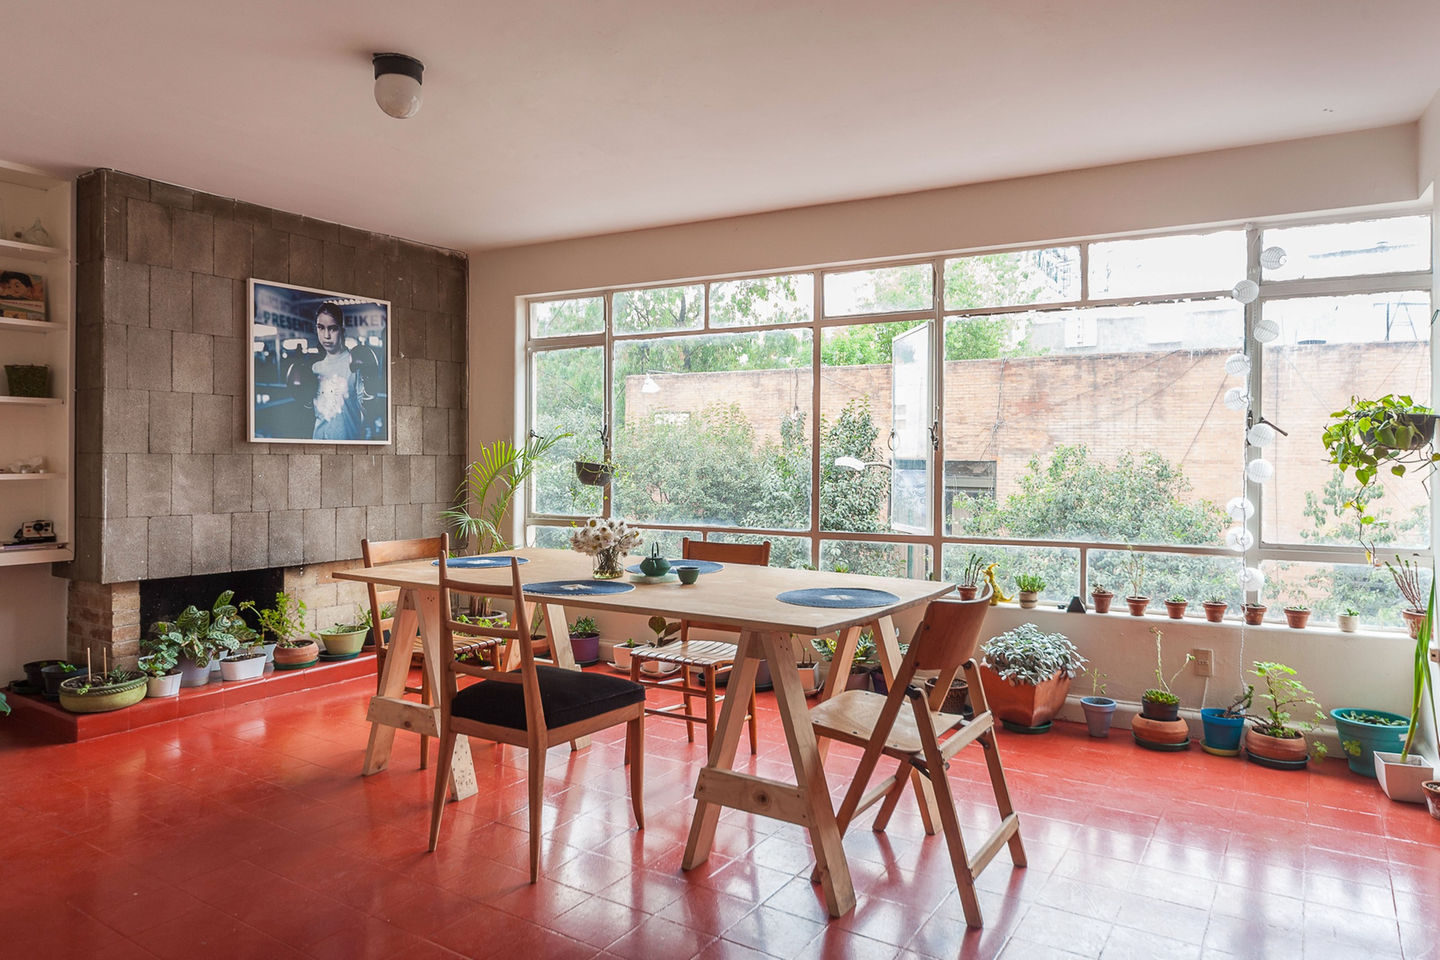 someform-an-apartment-in-roma-norte-airbnb